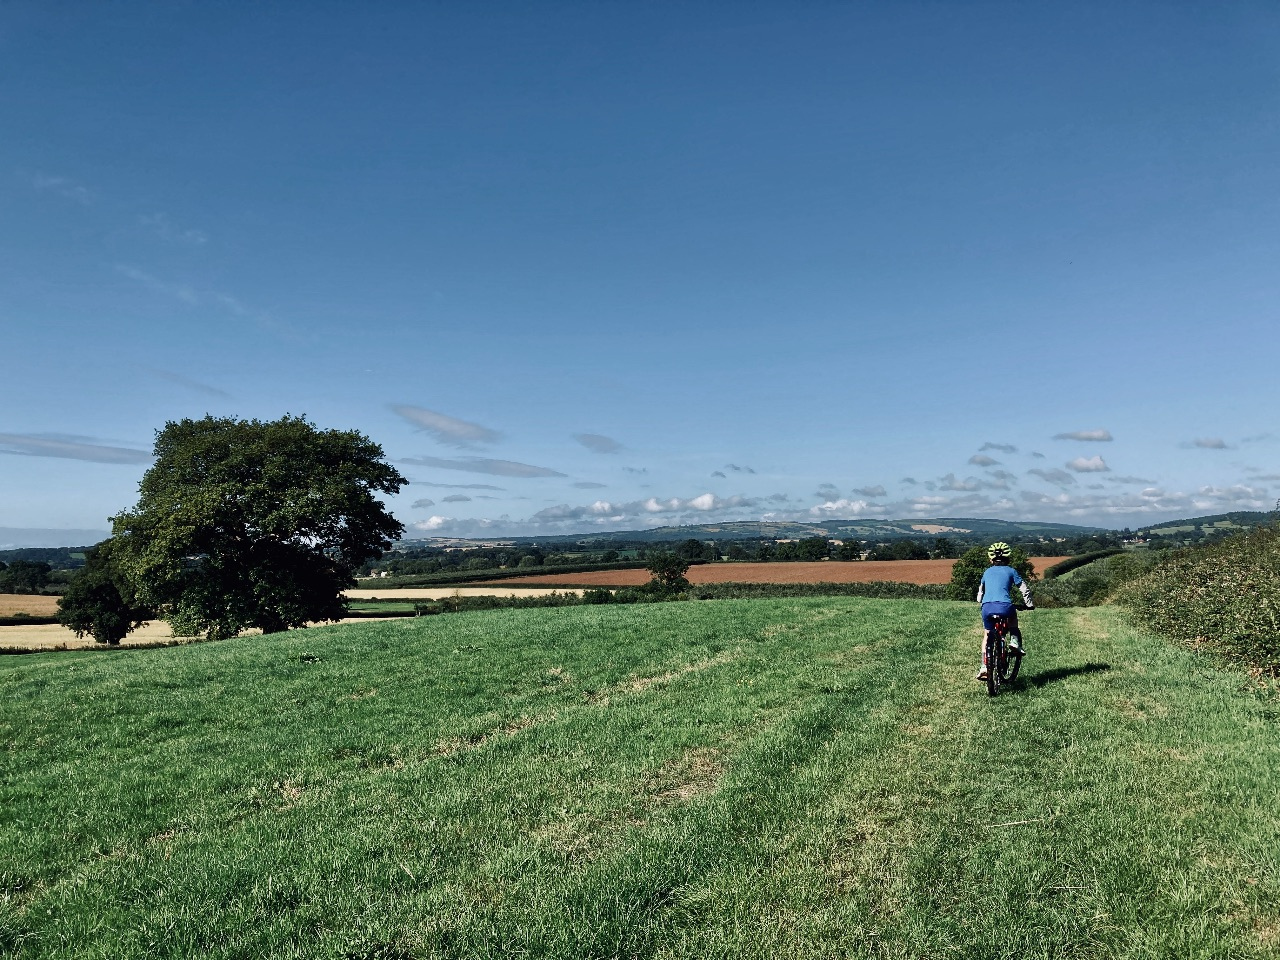 A child rides their bike away from the camera through a grassy field